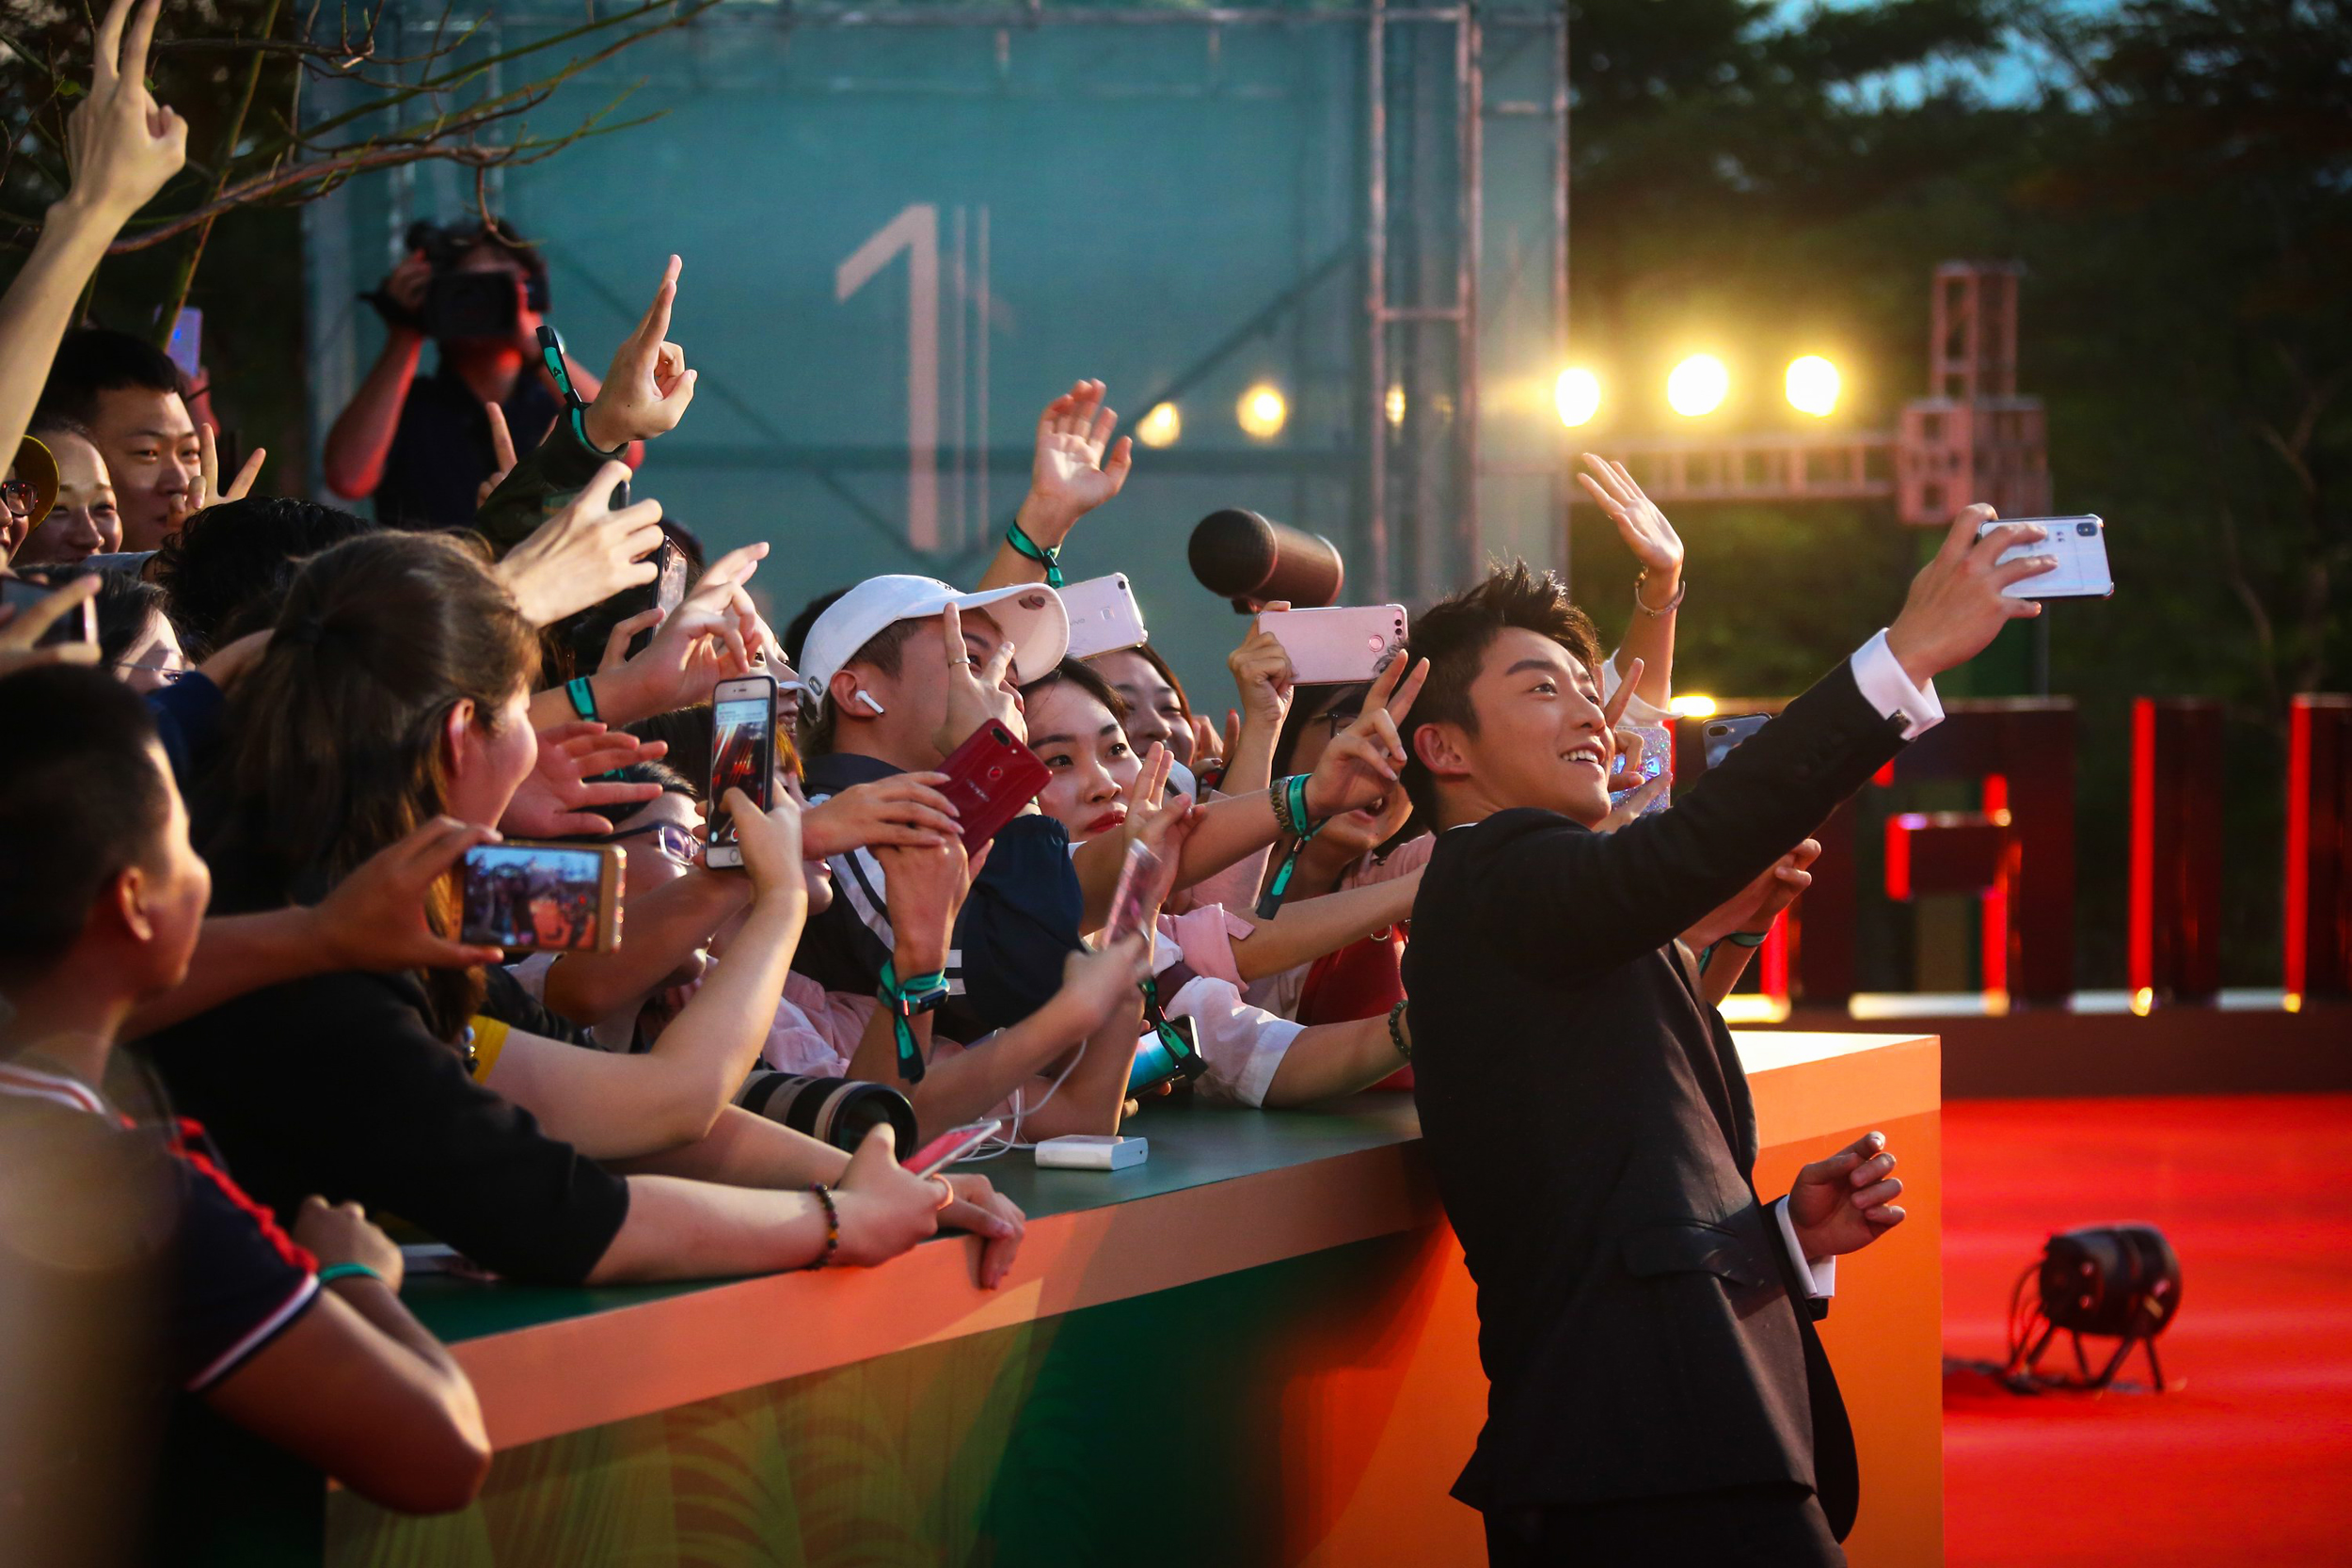 China cracks down on fan groups as Beijing targets celebrity influence